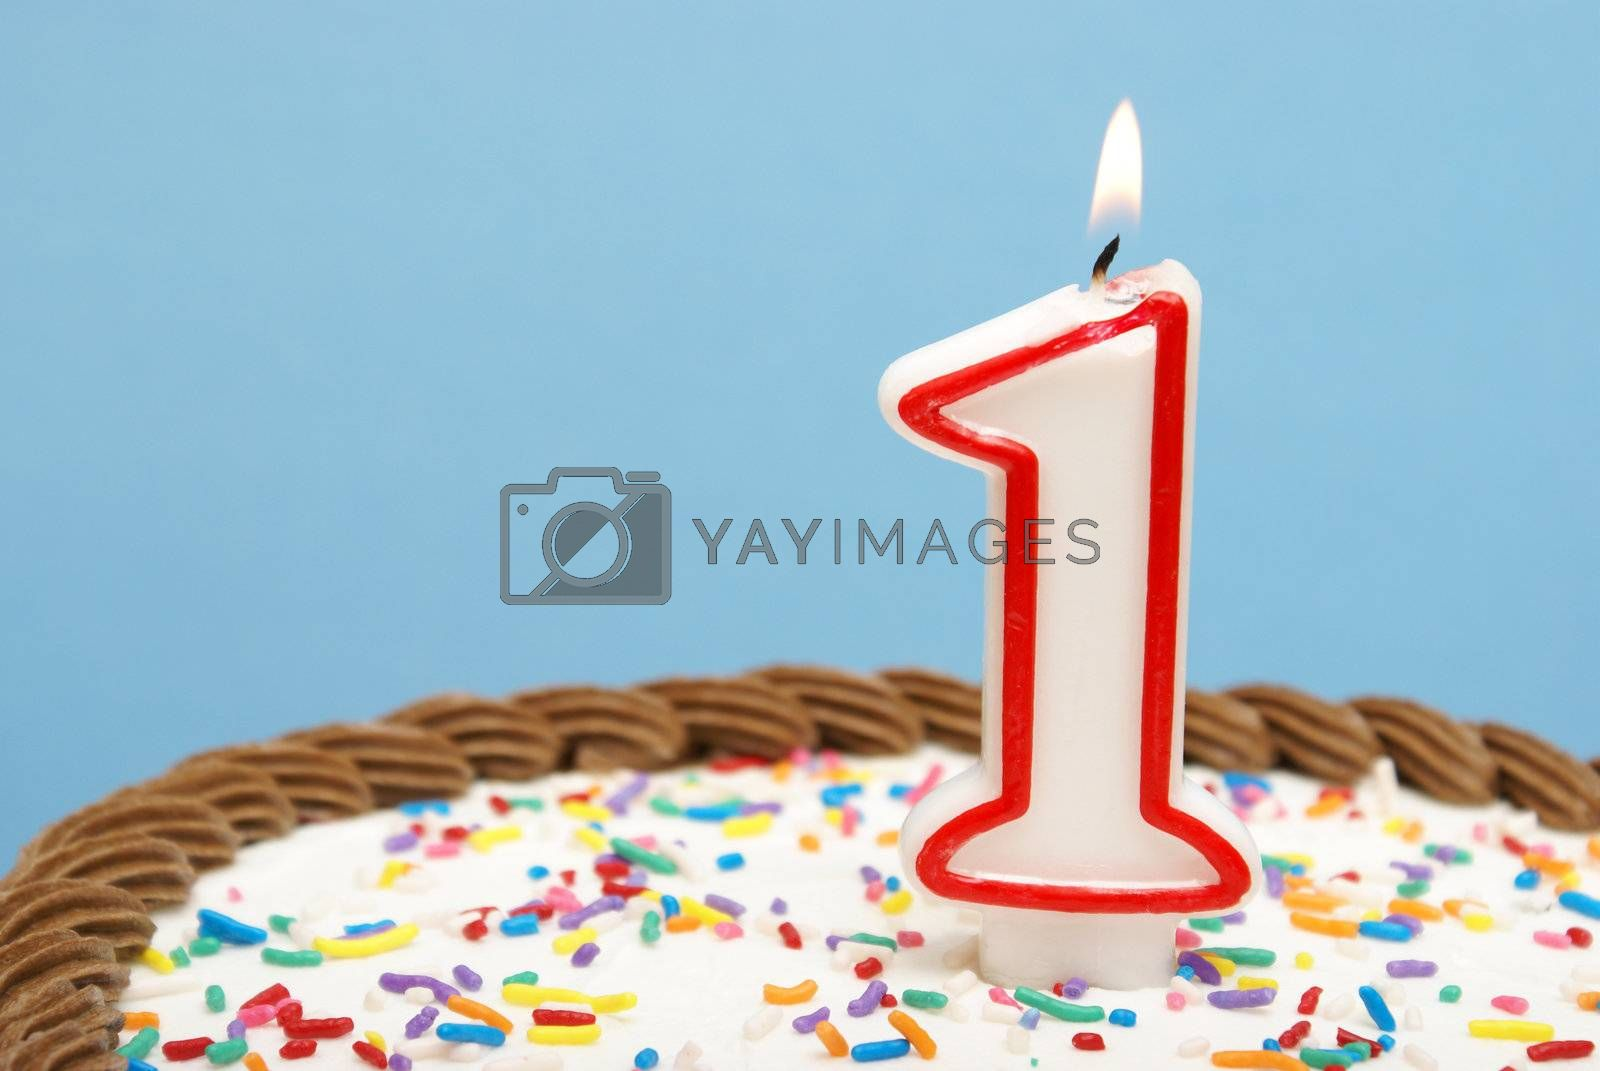 A celebration of the first year either for a birthday, business or other event.